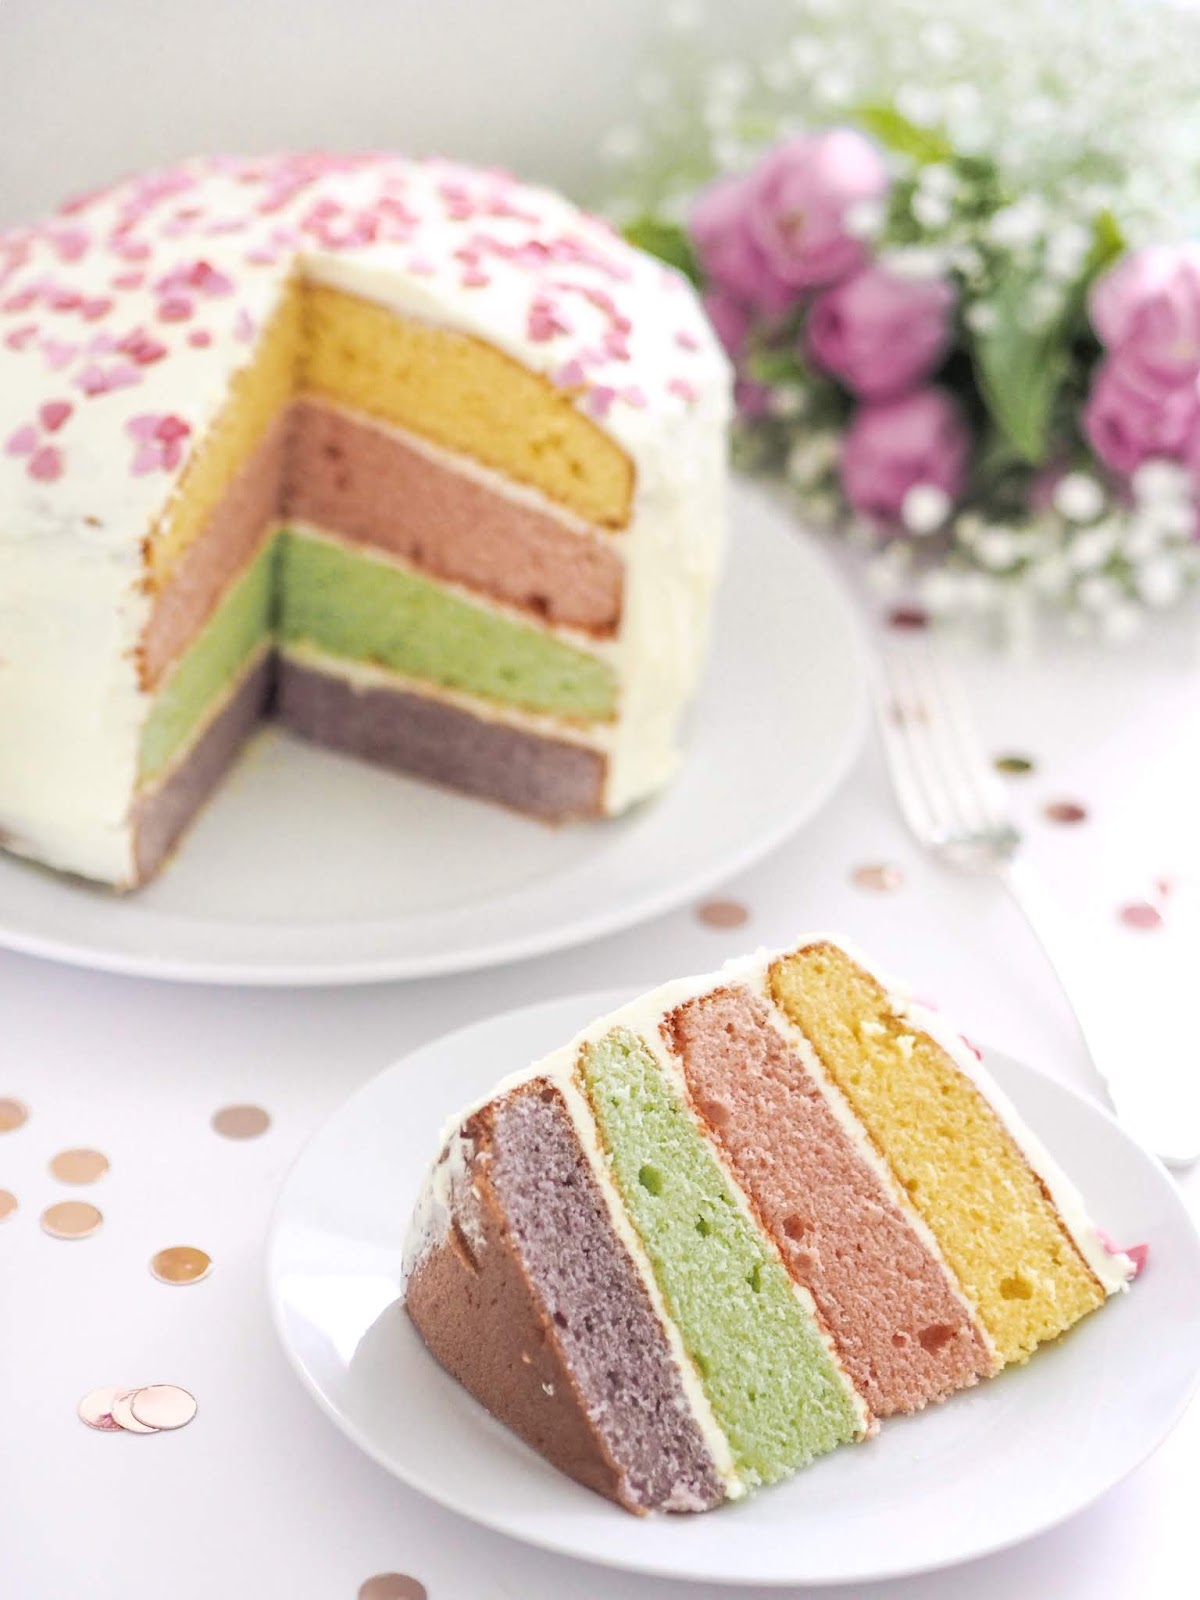 Pastel Layer Cake Recipe, Sponge Cake, Baking, Food Blogger, Cake Recipe, Pastel Sponge Cake, Cake Aesthetic, Lifestyle Photography, Pastel Colours, UK Food Blogger